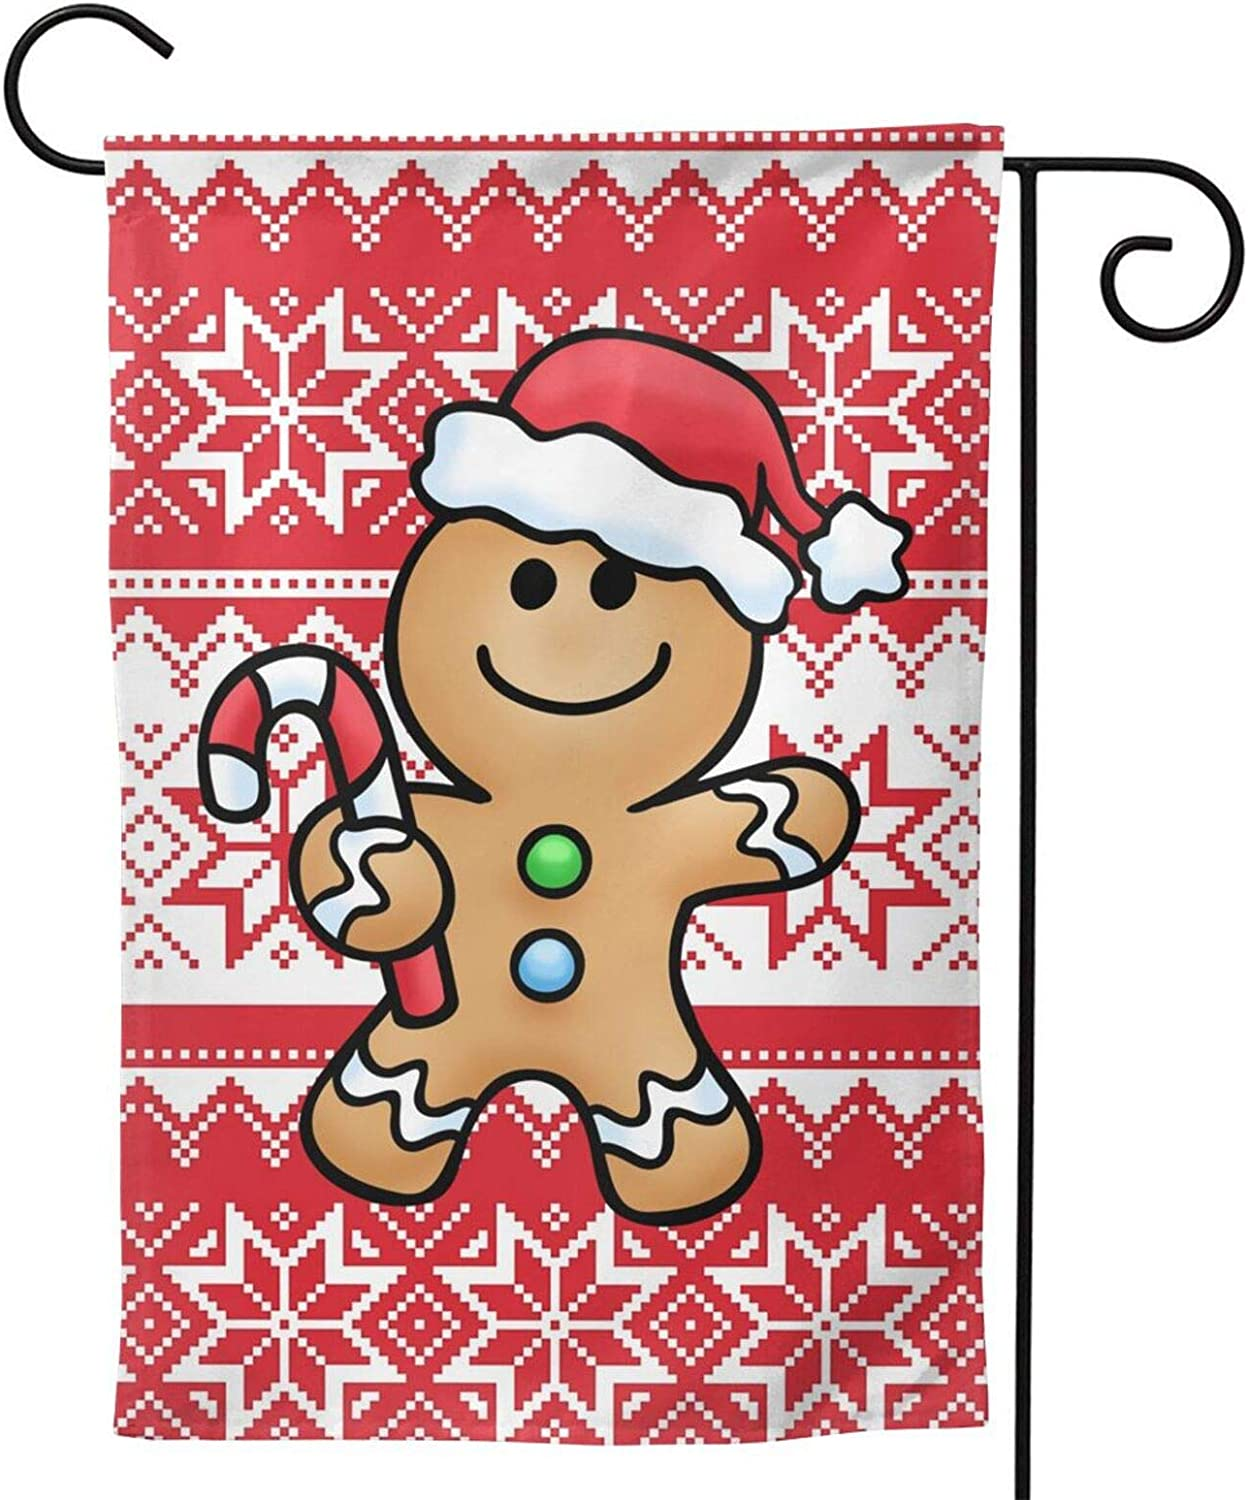 XXINNKQFWY Gingerbread Man Christmas Hat Garden Flag Home Decoration House Flags Garden Decoration Outdoor Decor Polyester Flag 12.5 X 18 Inch